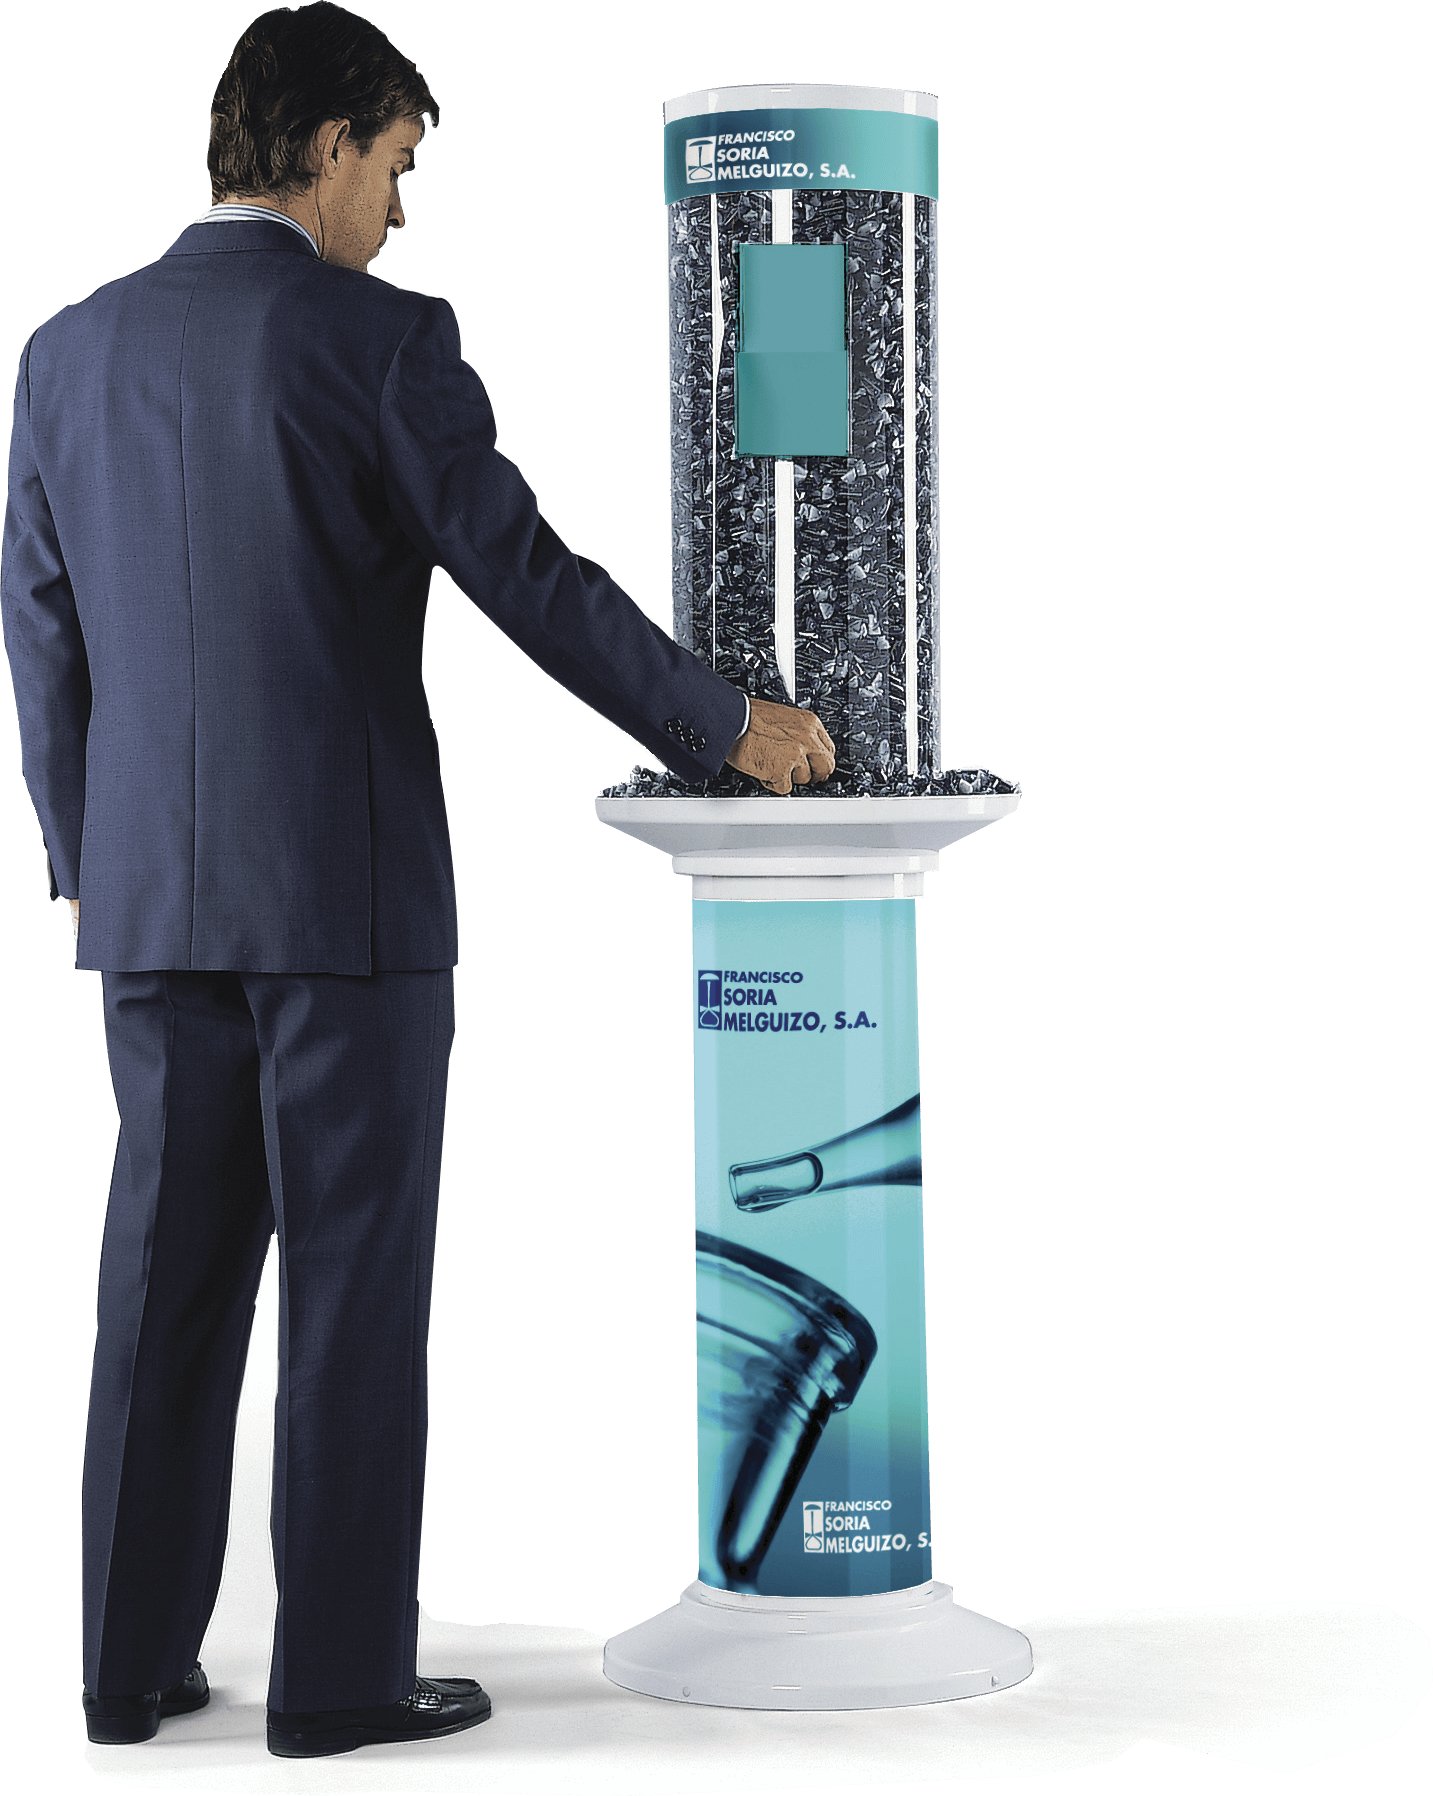 Display stand with brochure holder